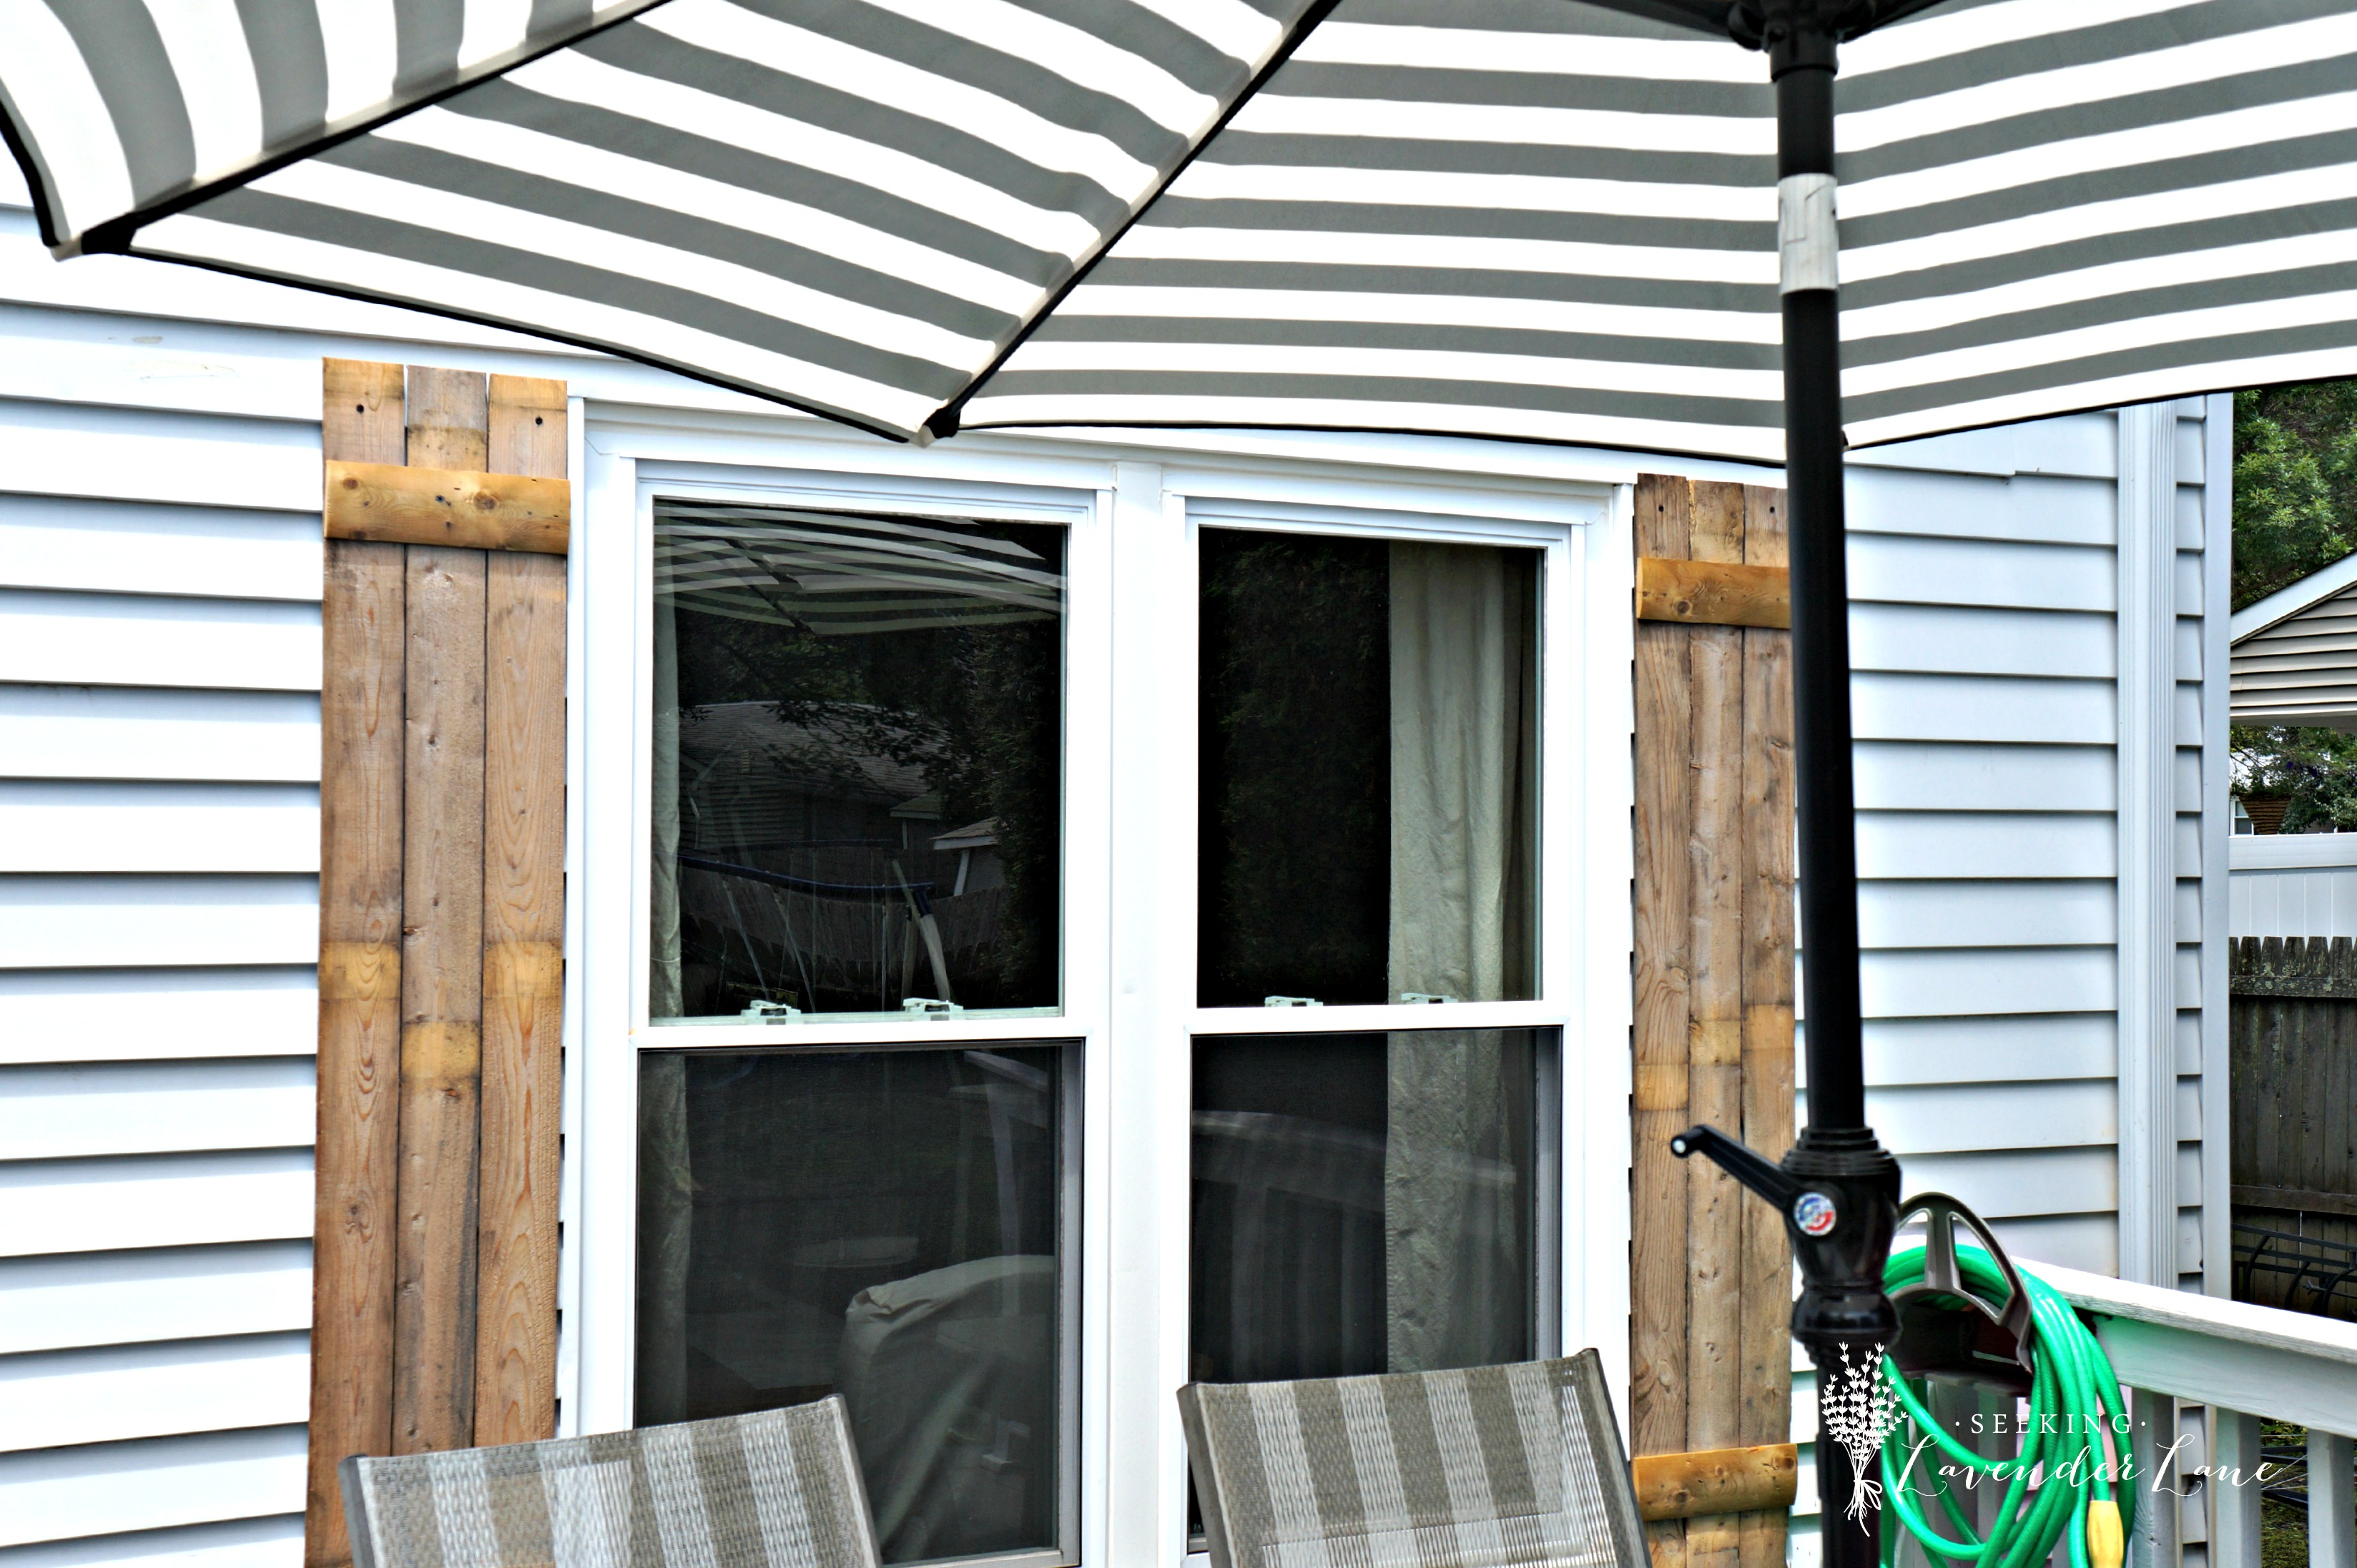 diy wooden shutters from fence wood